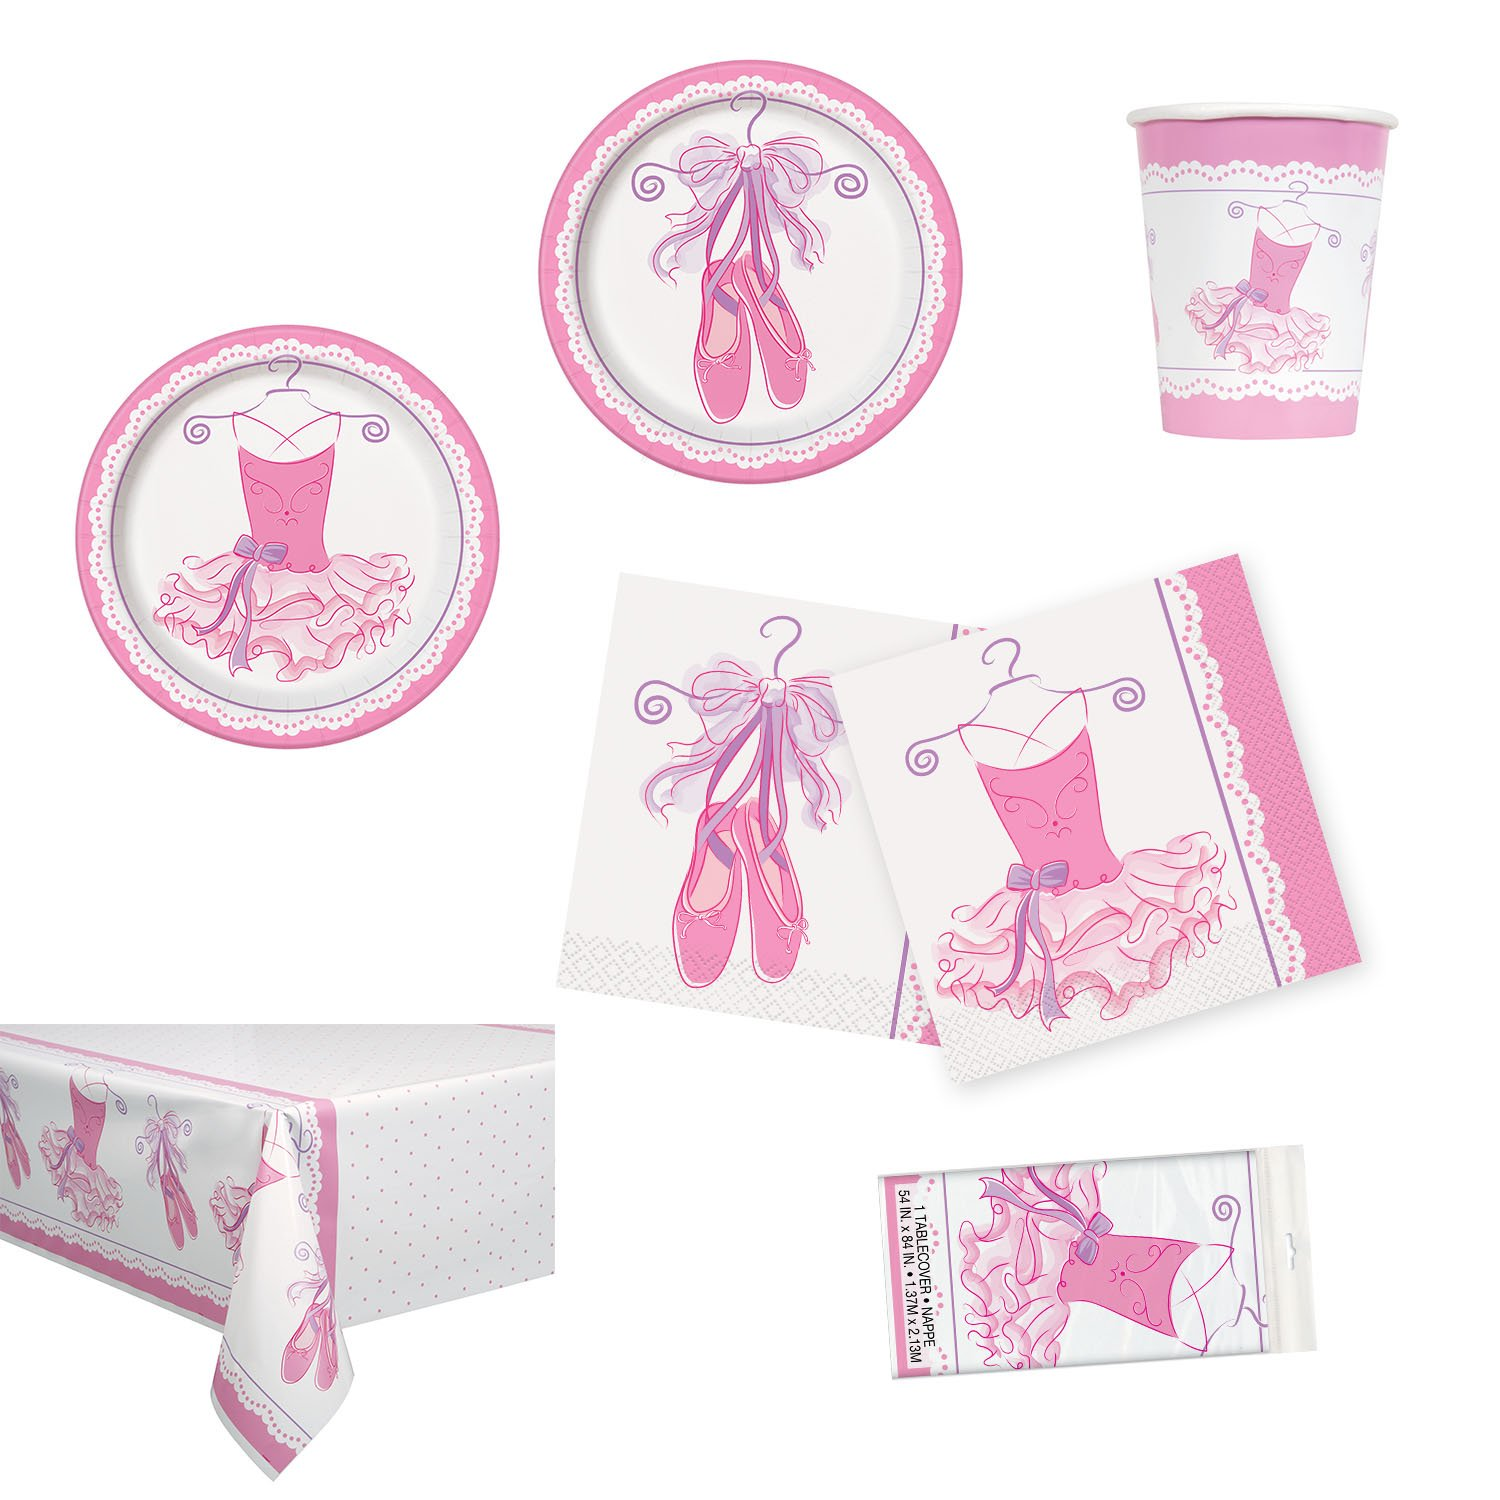 Unique Pink Ballerina Party Bundle | Luncheon & Beverage Napkins, Dinner & Dessert Plates, Table Cover, Cups | Great for Dance/Girly Birthday Themed Parties